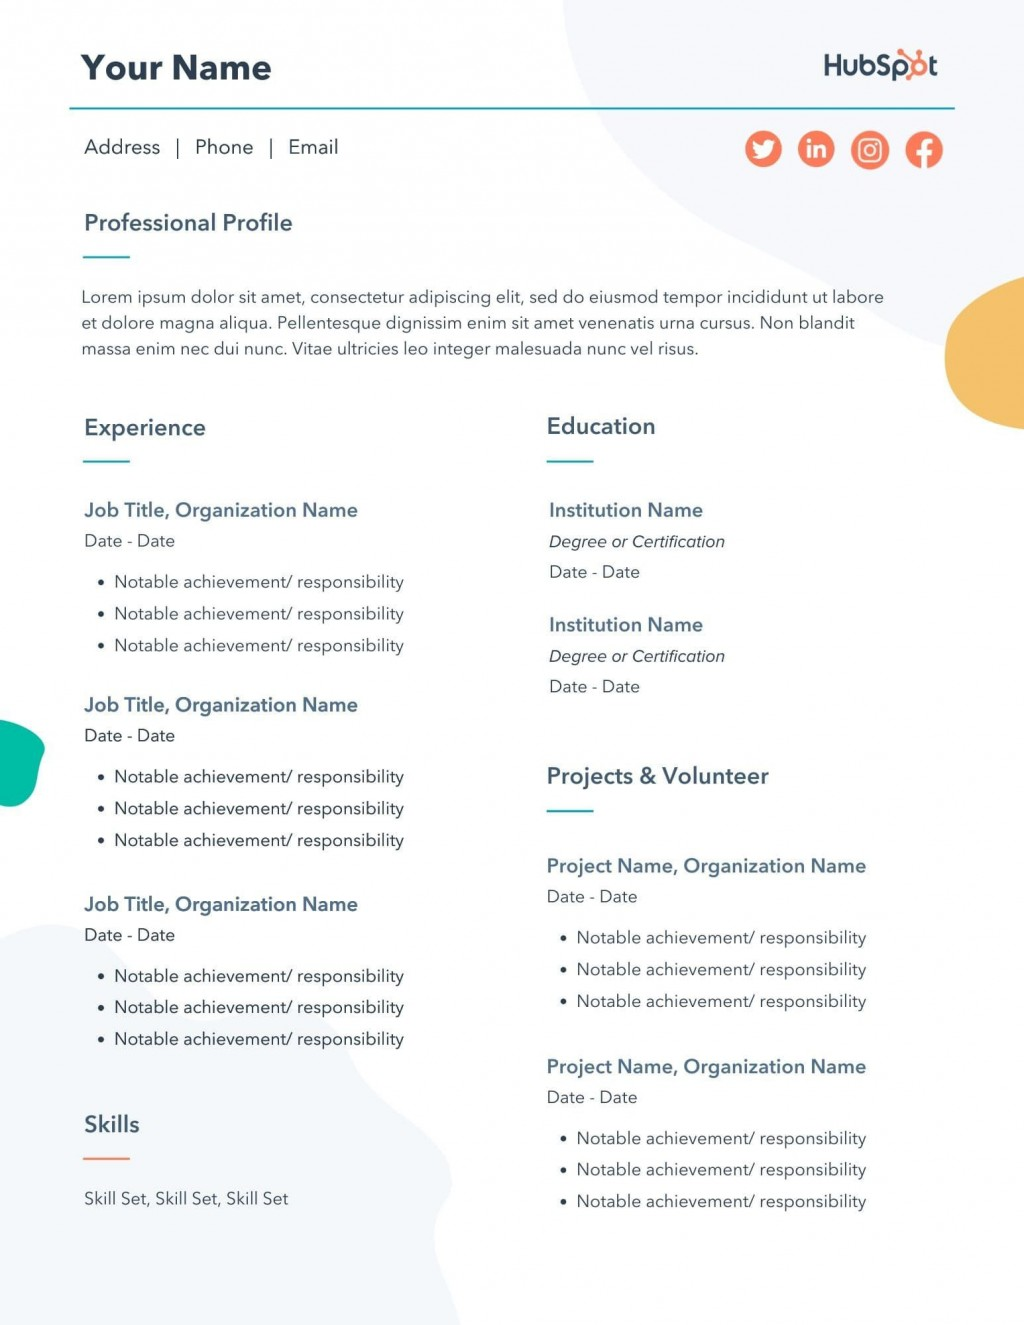 004 Top Resume Template For First Job Image  After College Sample Student TeenagerLarge